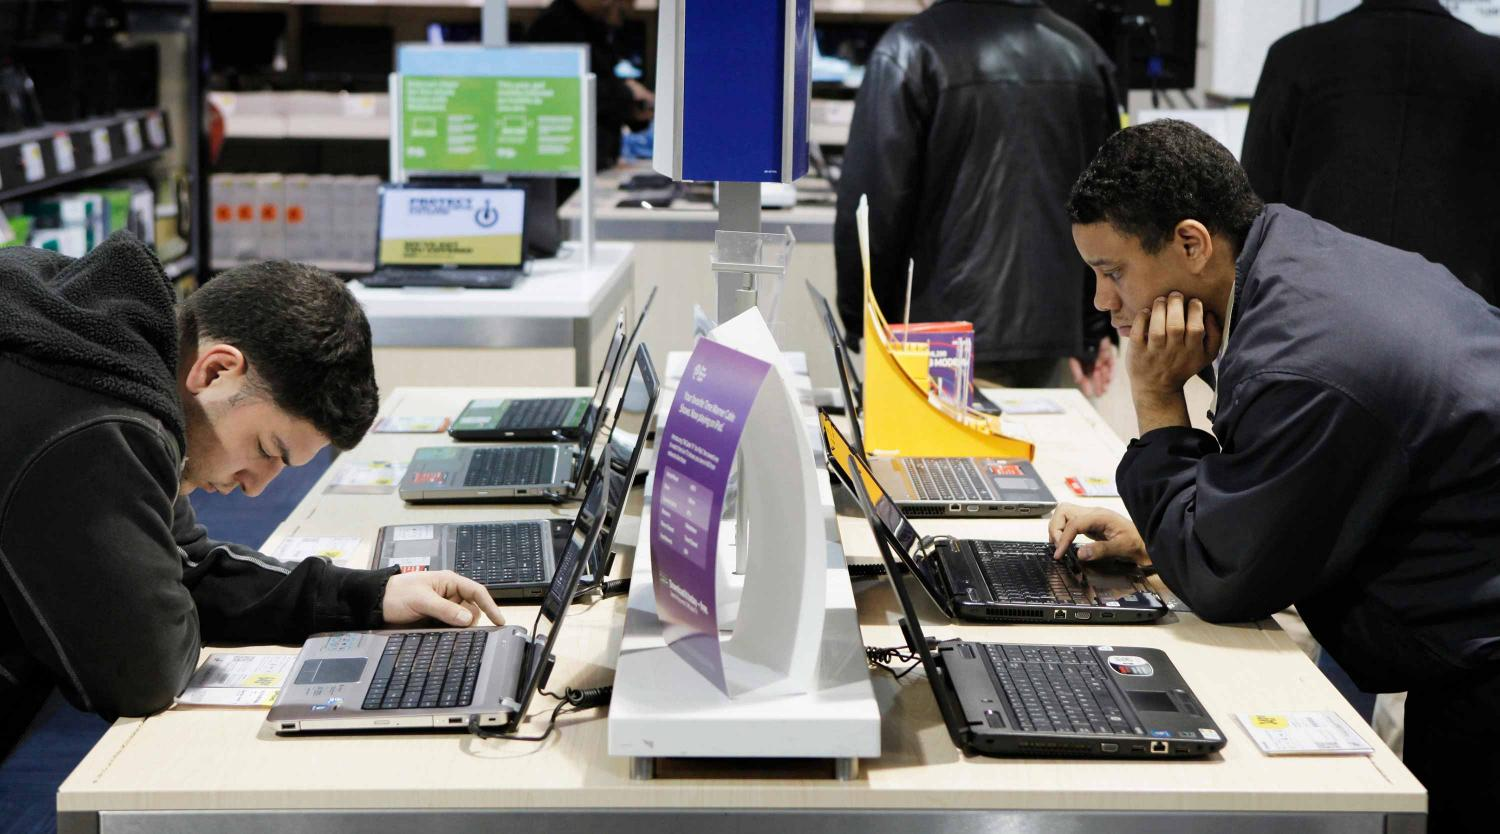 Two men inspect laptop computers while shopping in a Best Buy store in New York City.